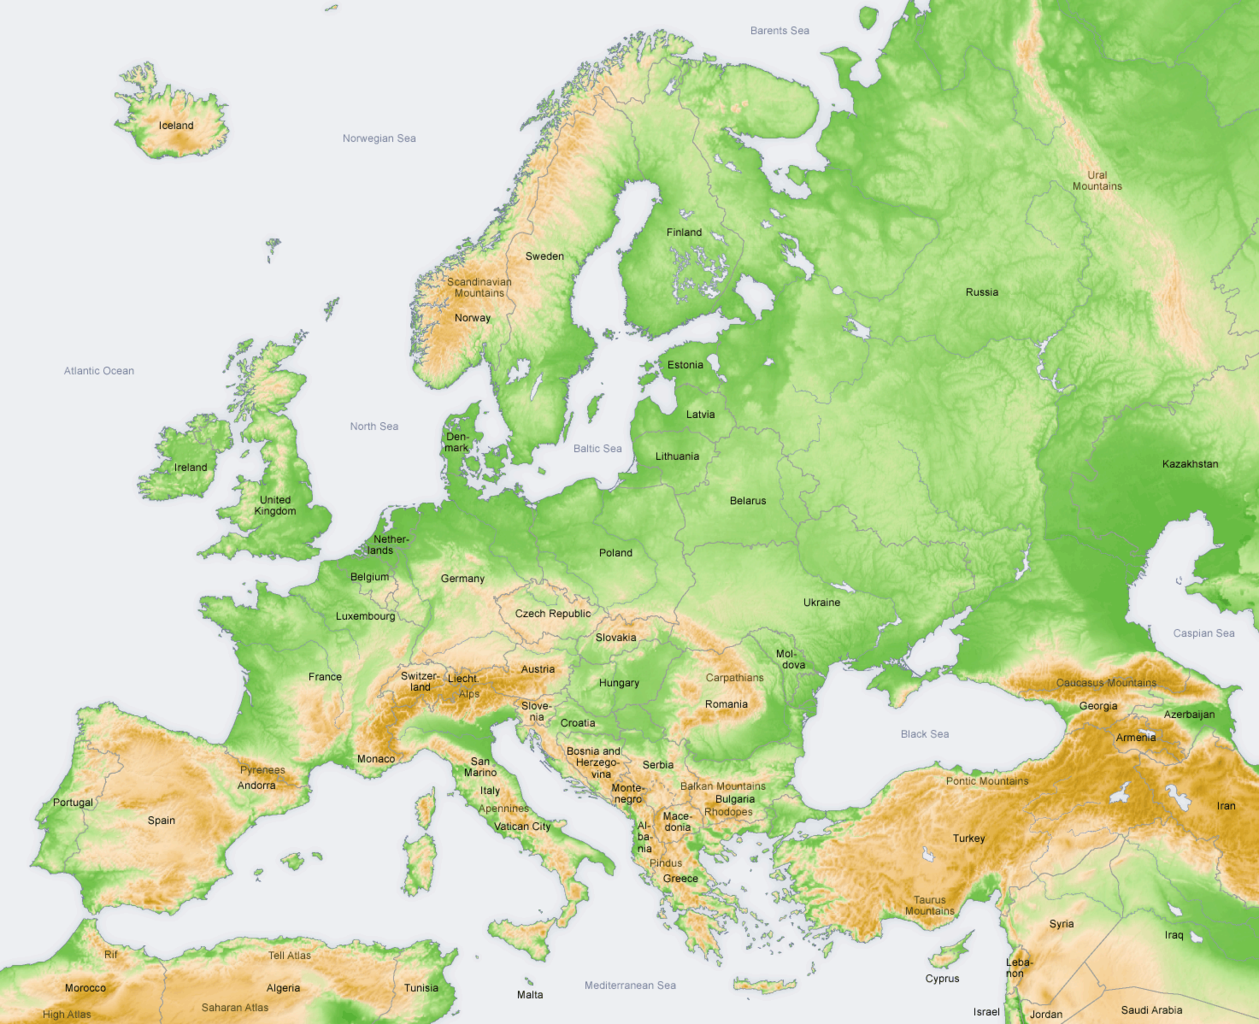 File:Europe topography map en.png   Wikimedia Commons